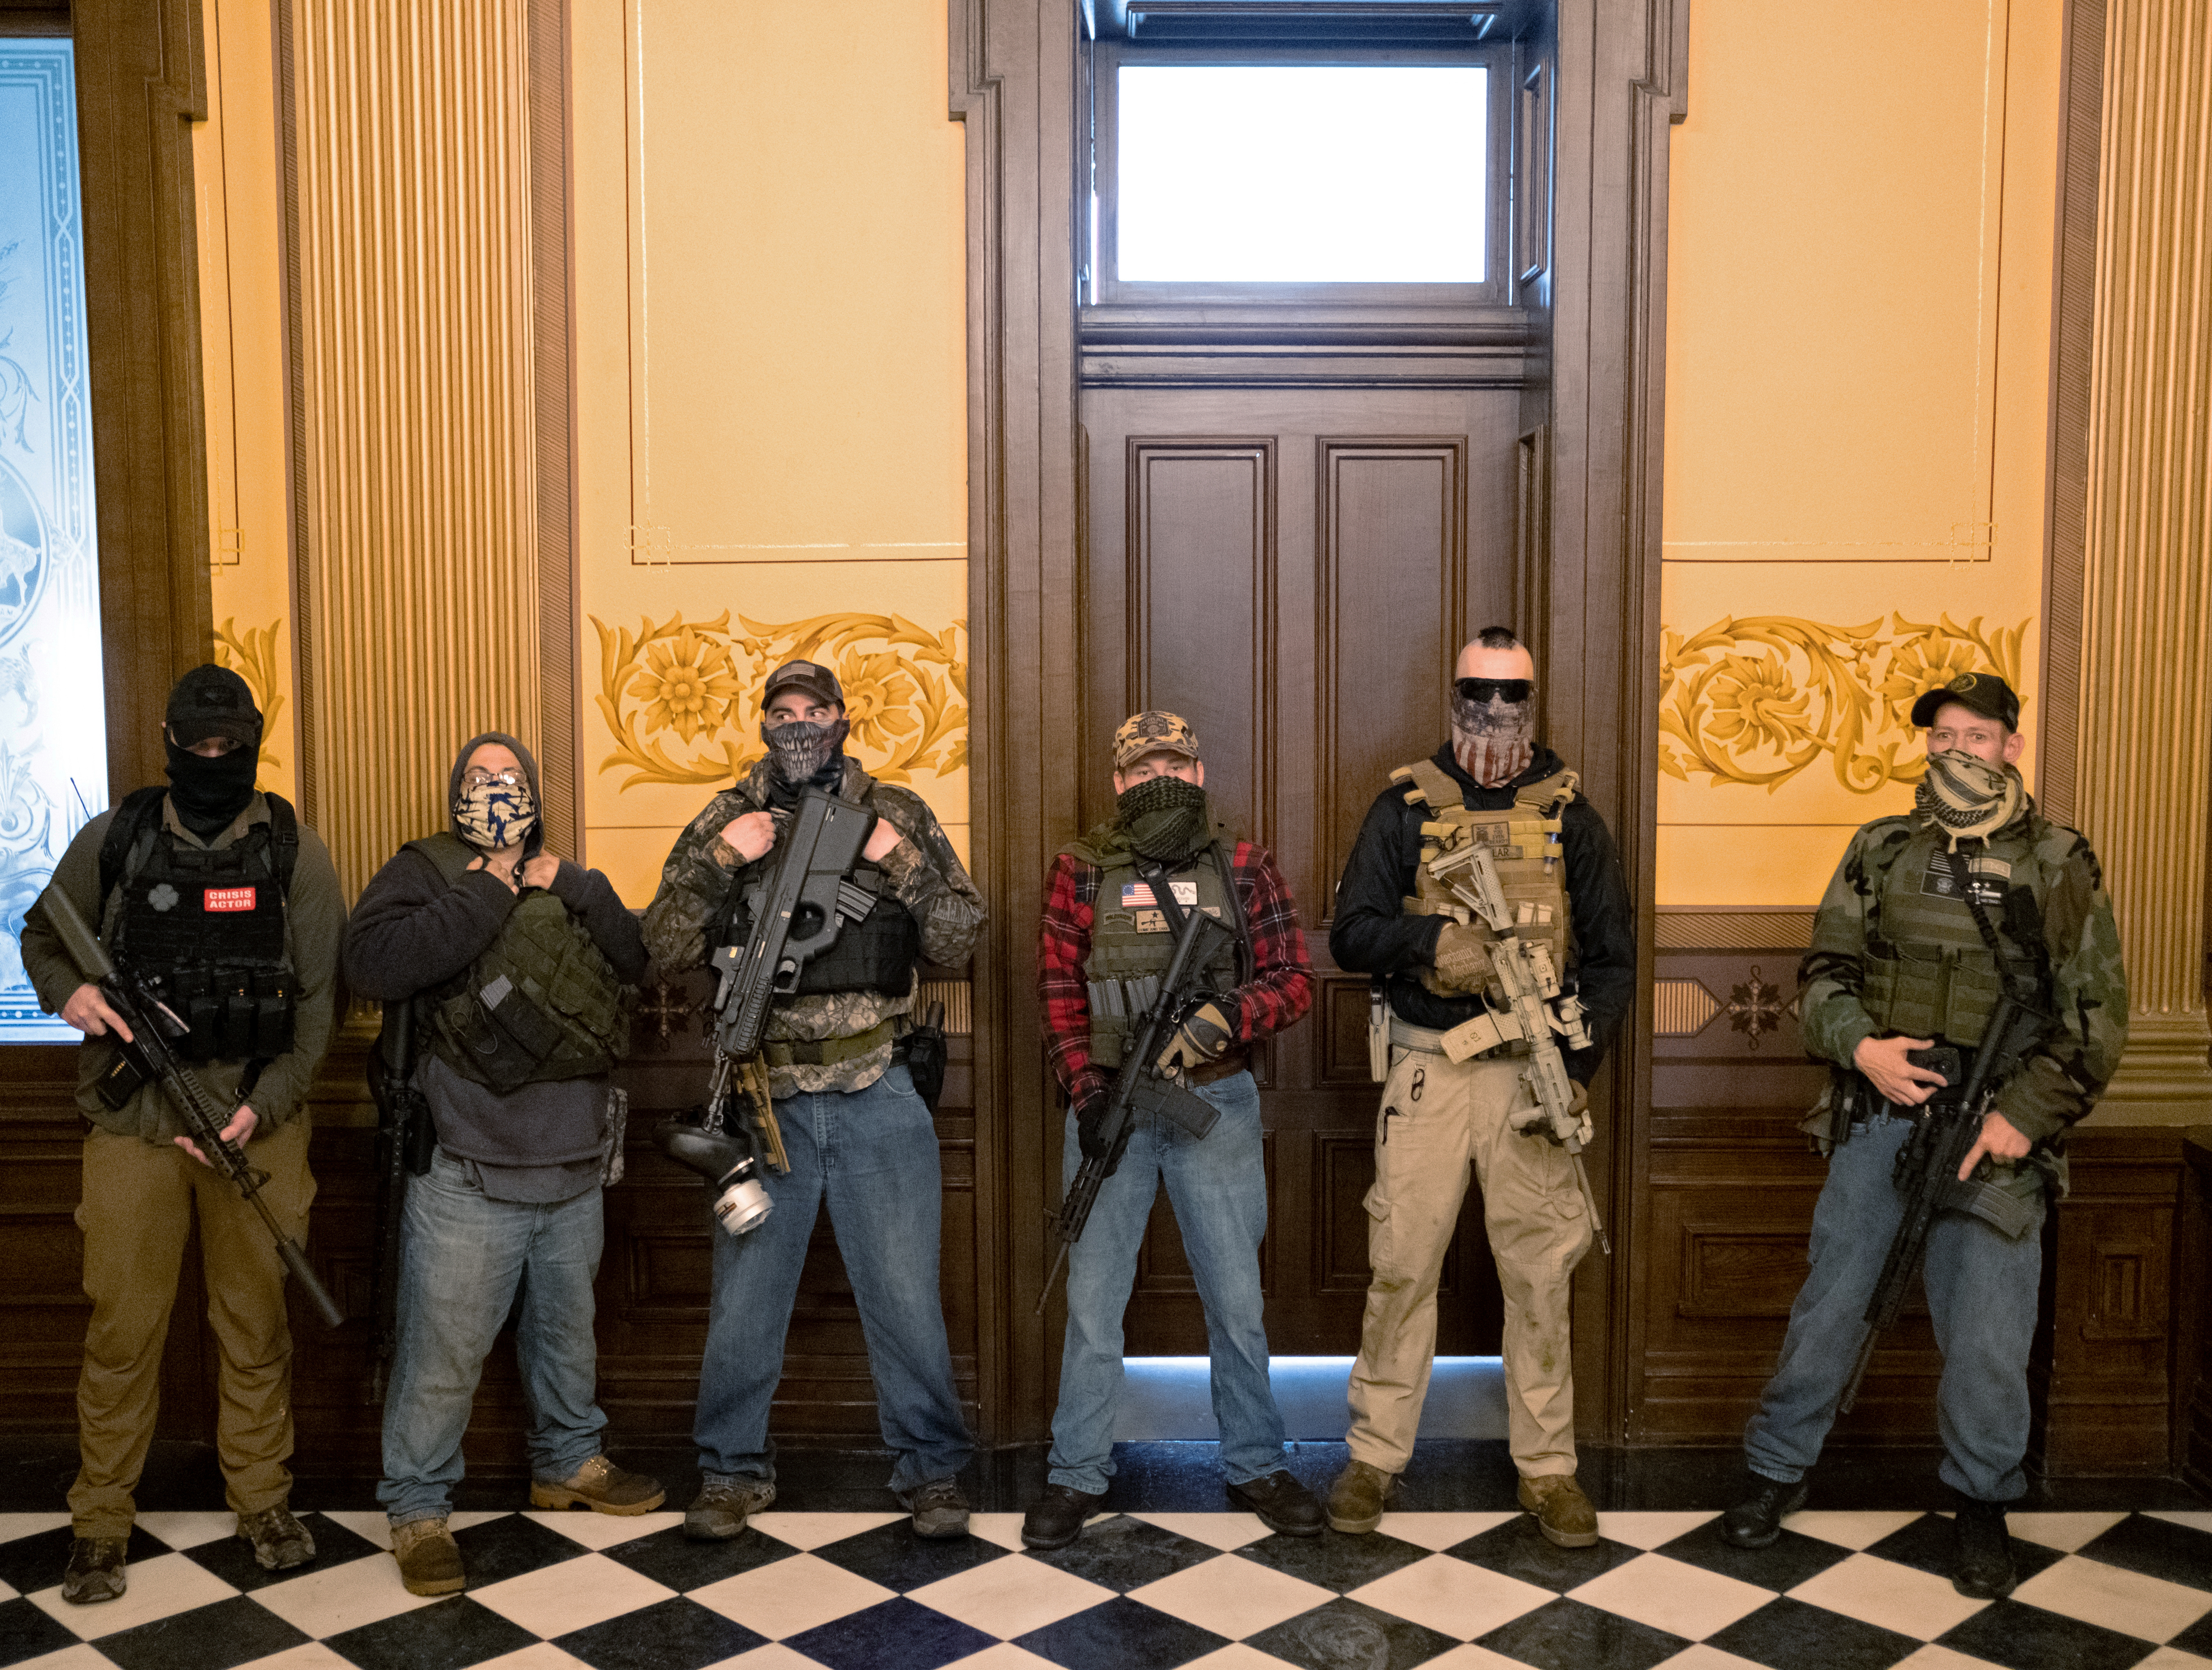 A militia group with no political affiliation from Michigan stands in front of the Governors office after protesters occupied the state capitol building during a vote to approve the extension of Governor Gretchen Whitmer's emergency declaration/stay-at-home order due to the coronavirus disease (COVID-19) outbreak, at the state capitol in Lansing, Michigan, U.S. Apr. 30, 2020. REUTERS/Seth Herald